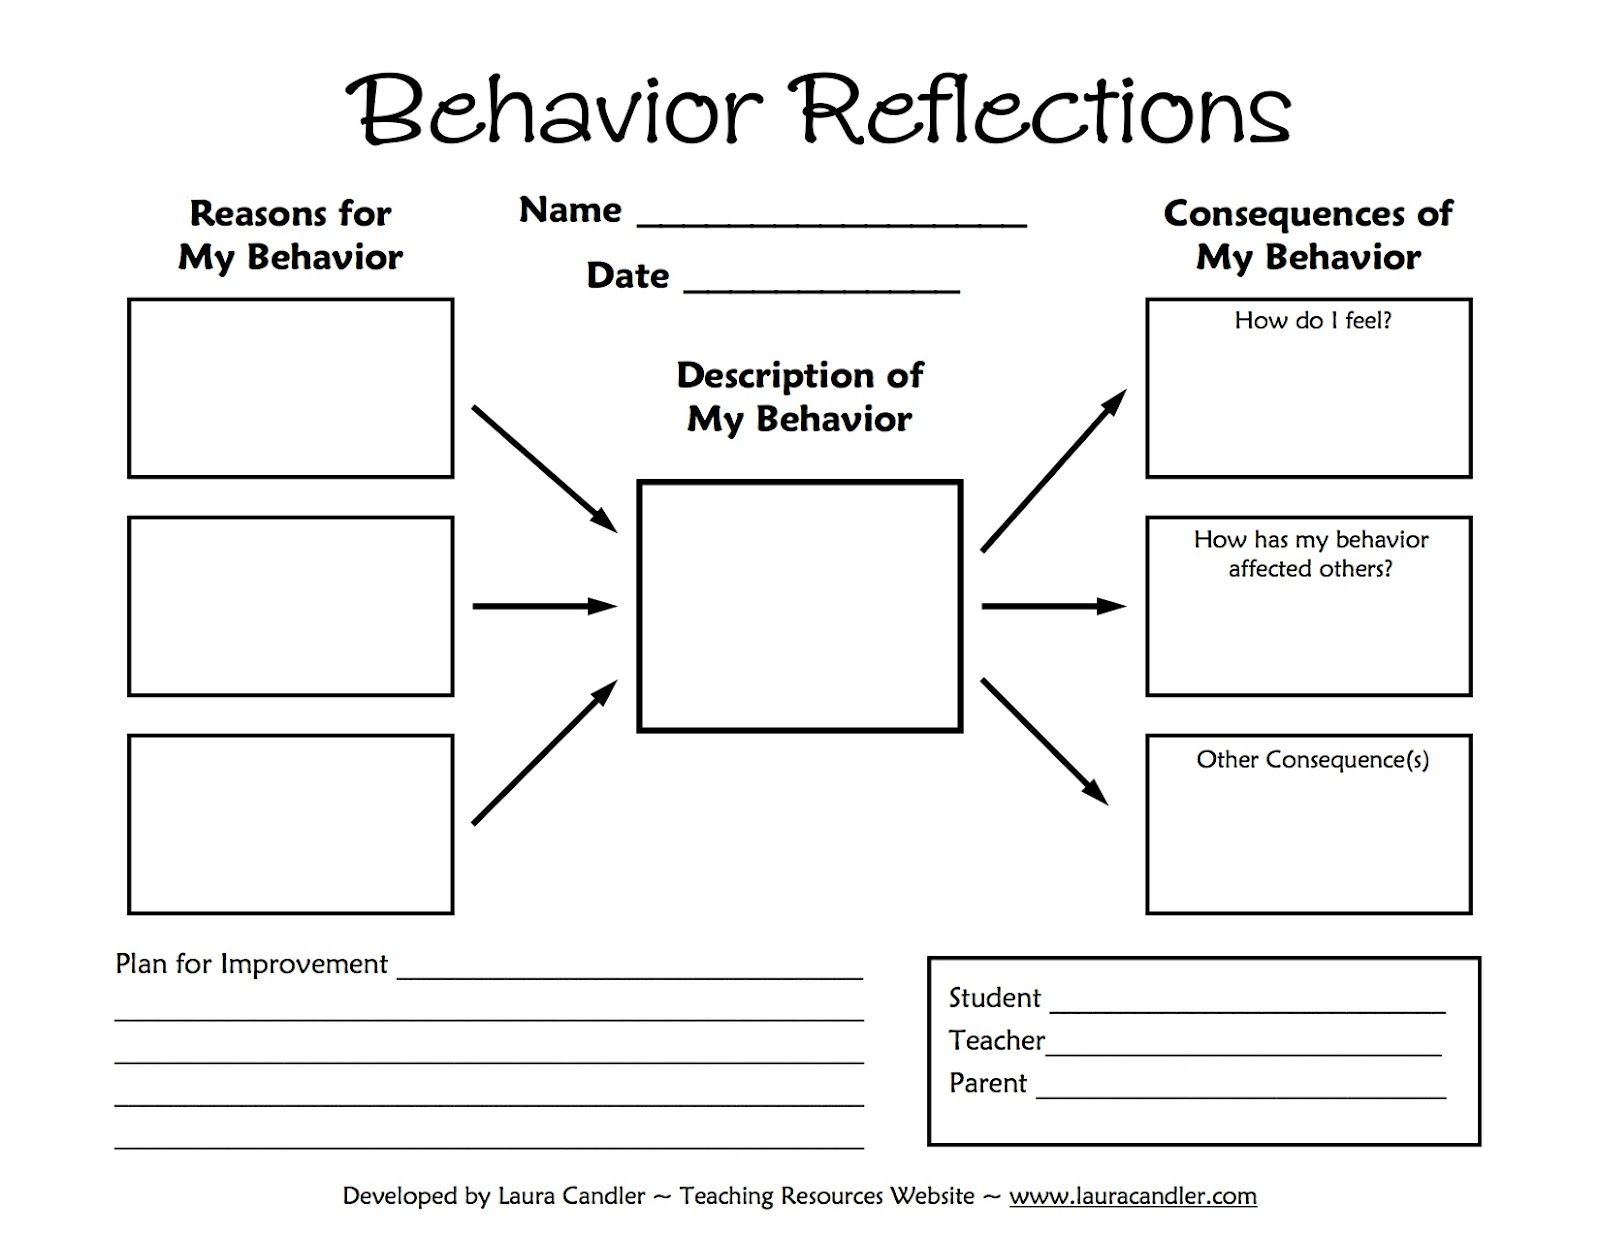 I Found This Awesome Behavior Reflections Sheet On